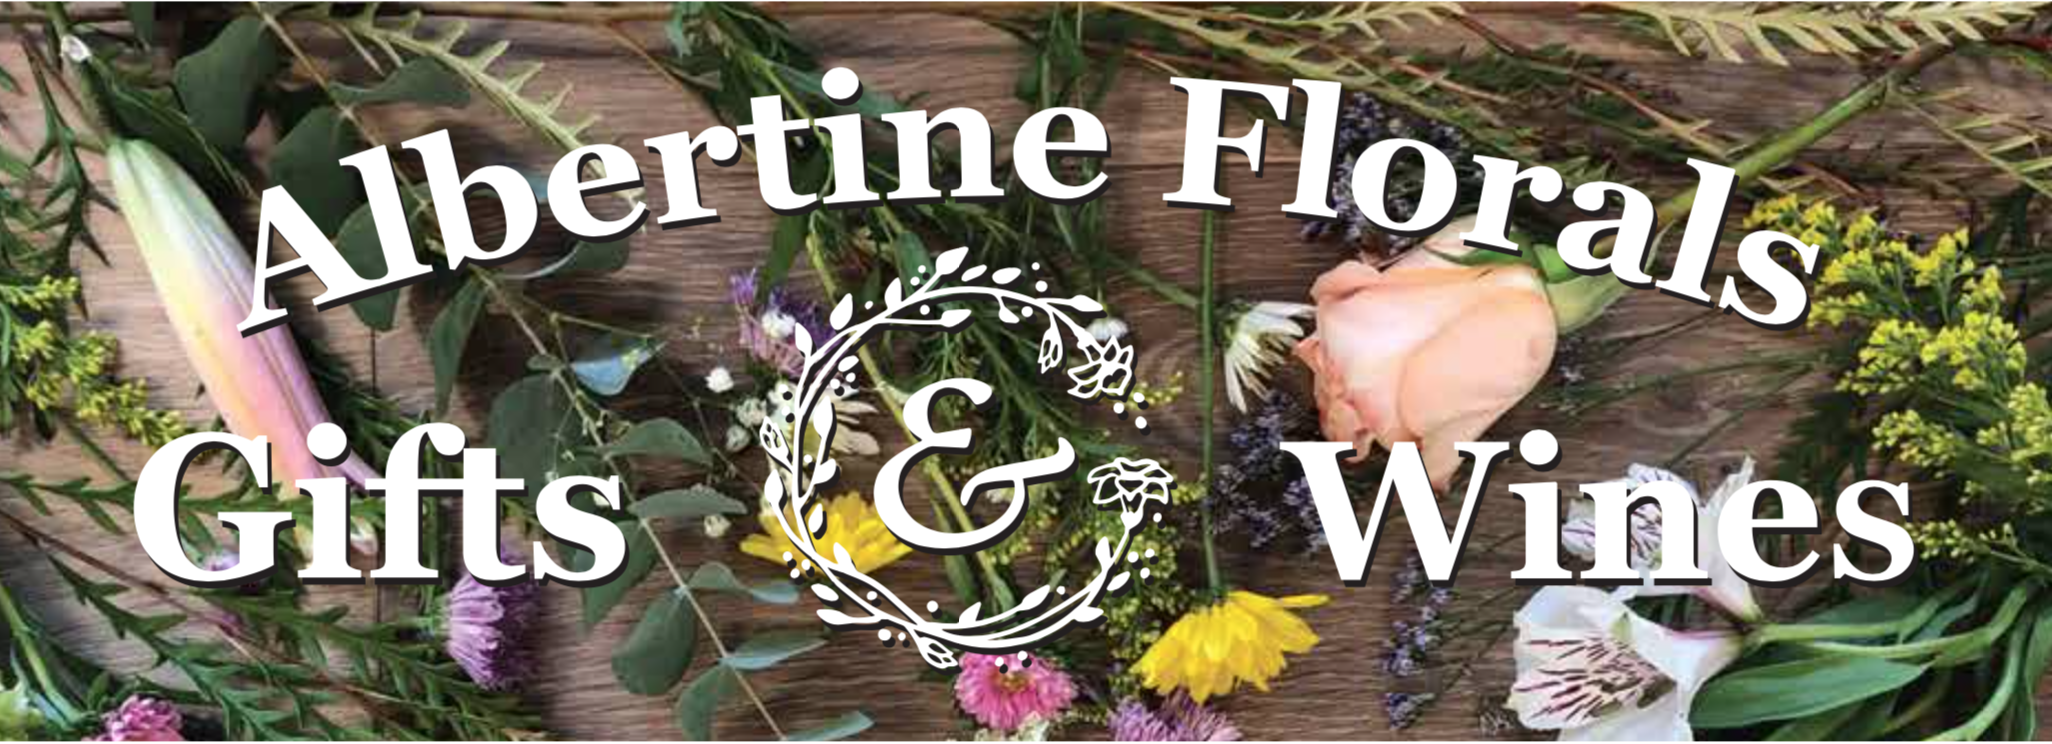 Albertines Florals, Gifts and Wine